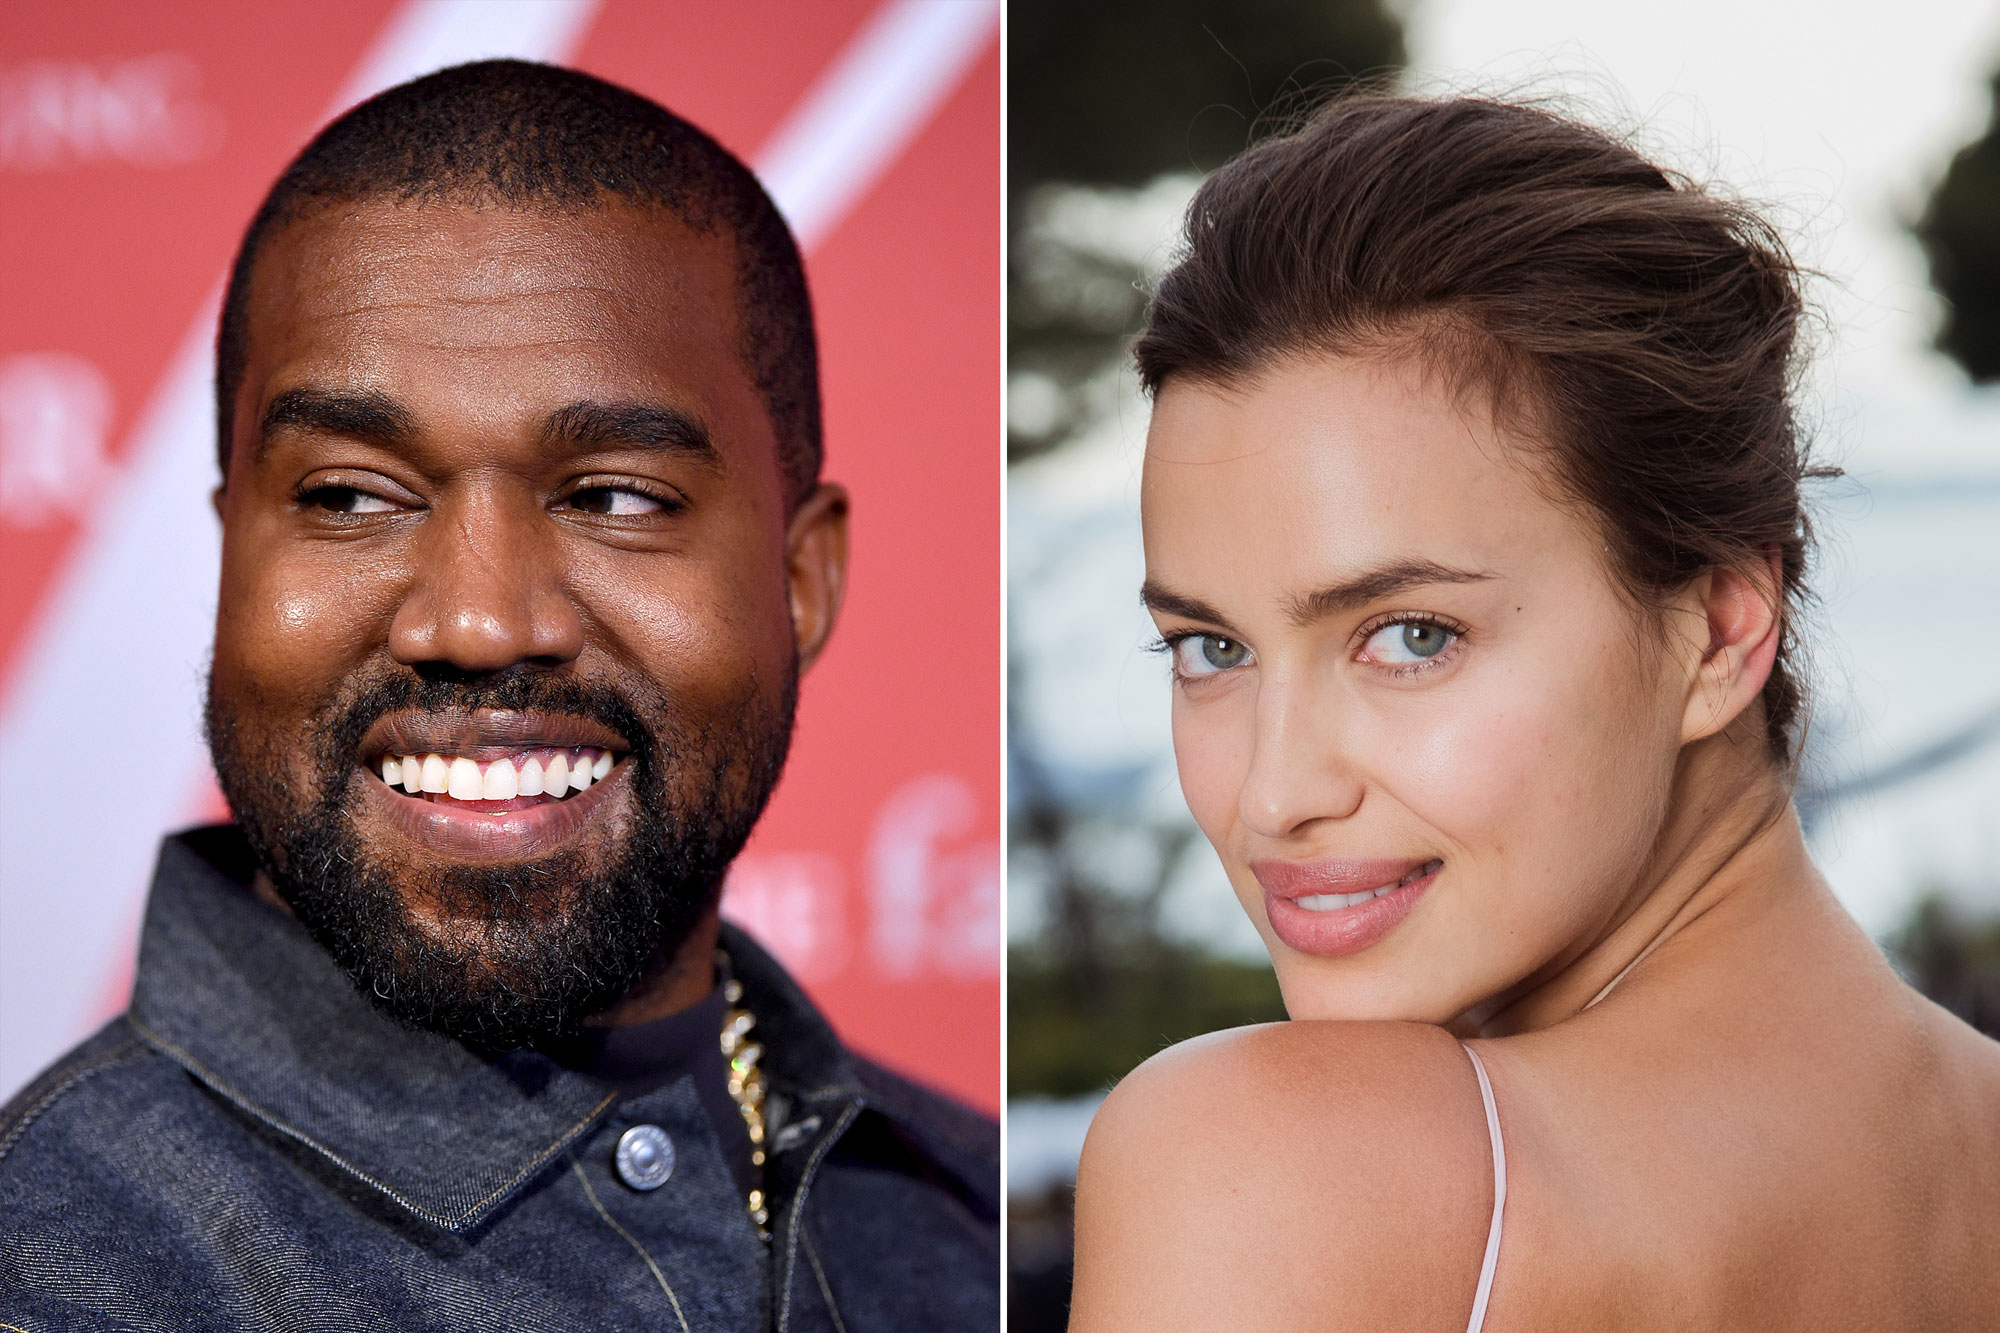 Kanye West, Irina Shayk spotted in France amid dating rumors